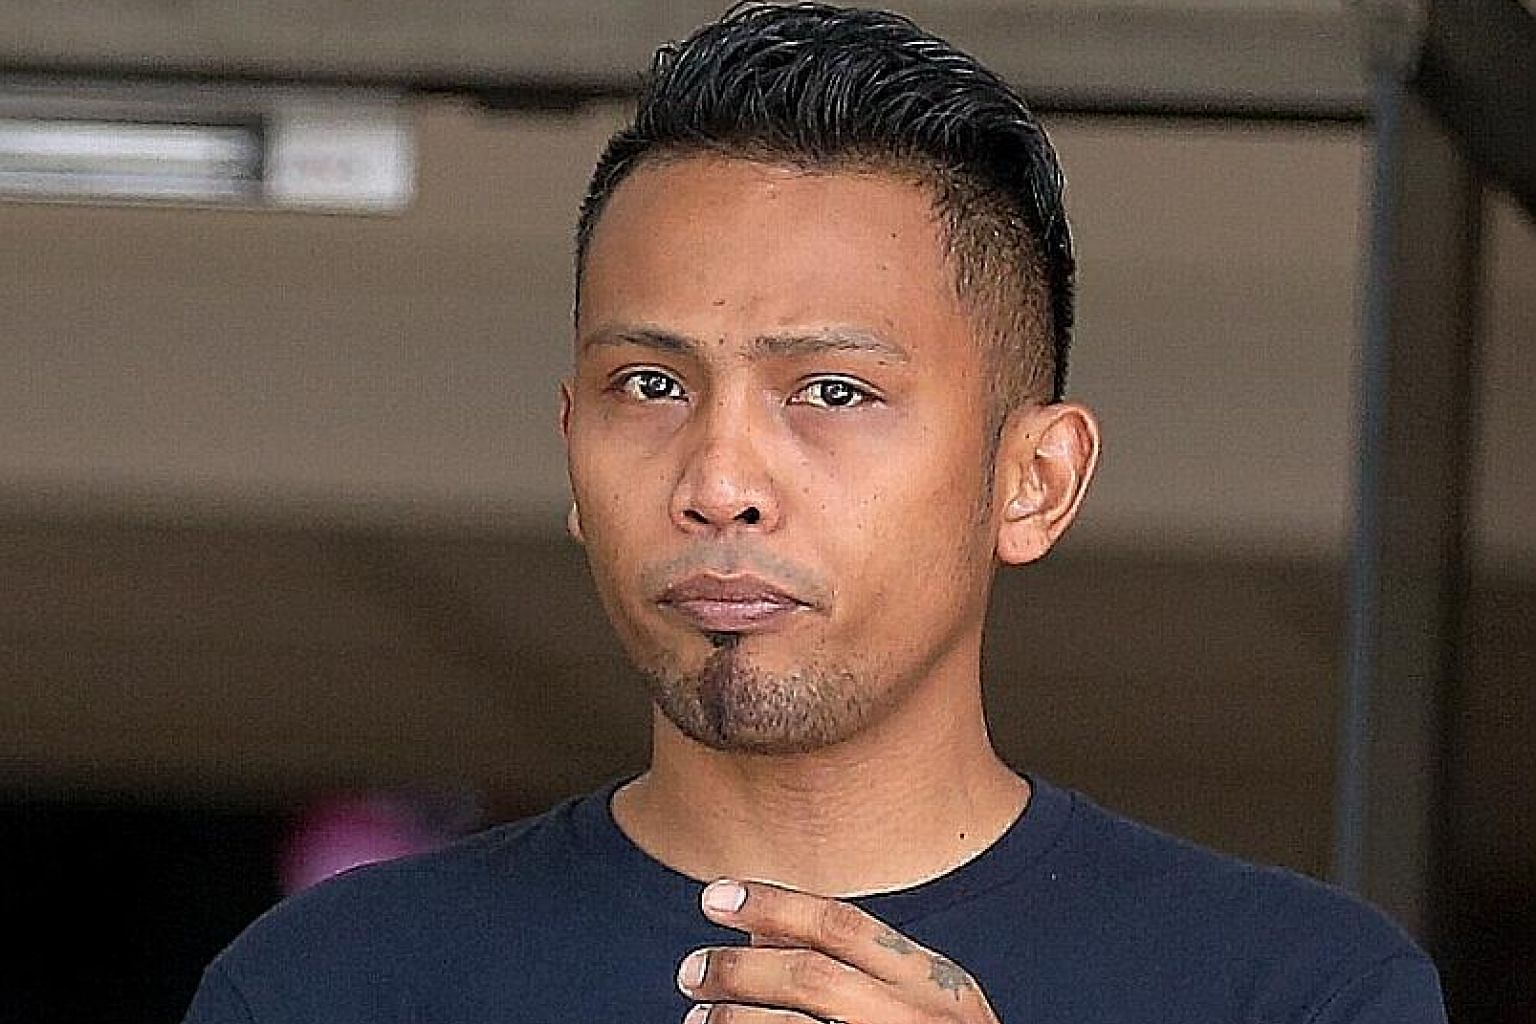 Mohammad Zulkifee Nasir headbutted an Aetos auxiliary policeman when the officer told him to rejoin the queue after he made an illegal U-turn at Woodlands Checkpoint in order to beat the traffic.